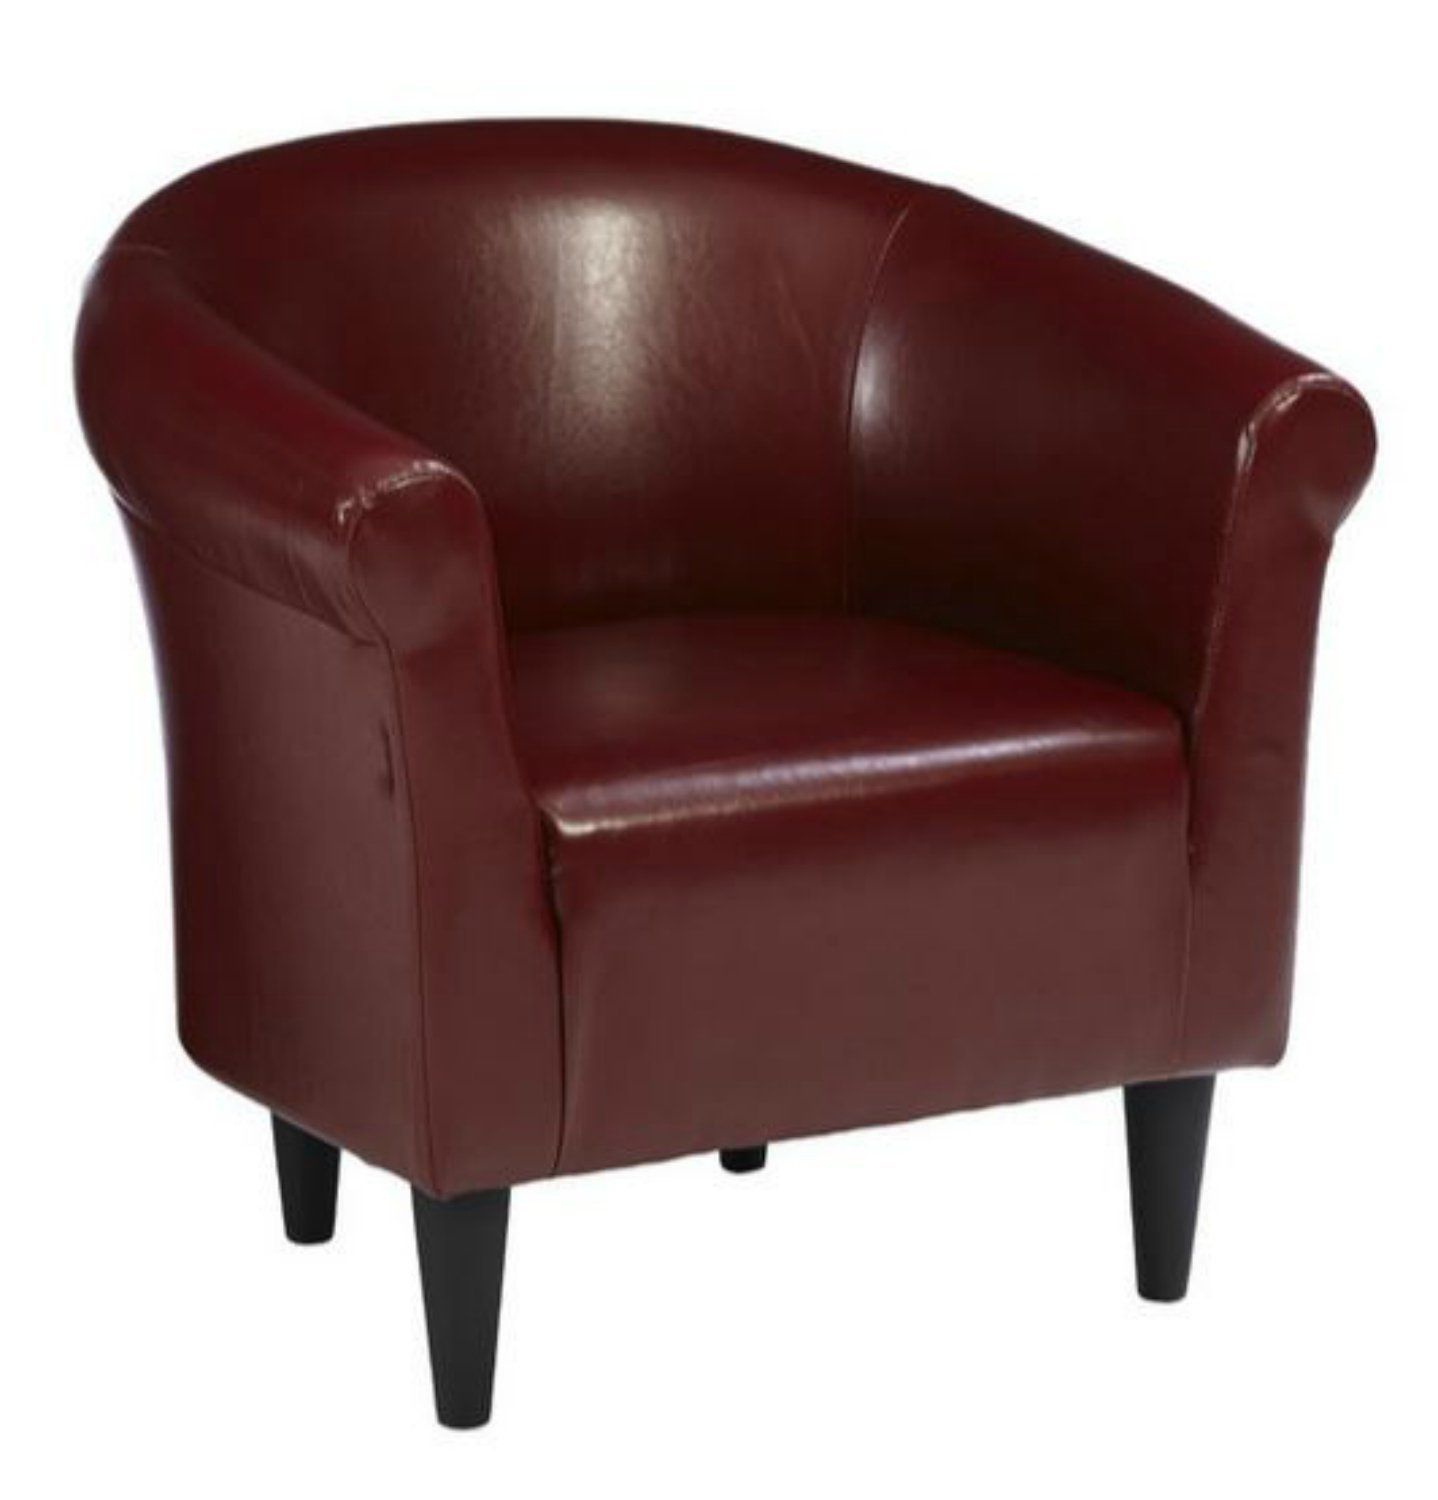 Amazon: Zipcode Contemporary Club Chair – This Faux Intended For Faux Leather Barrel Chairs (View 3 of 15)